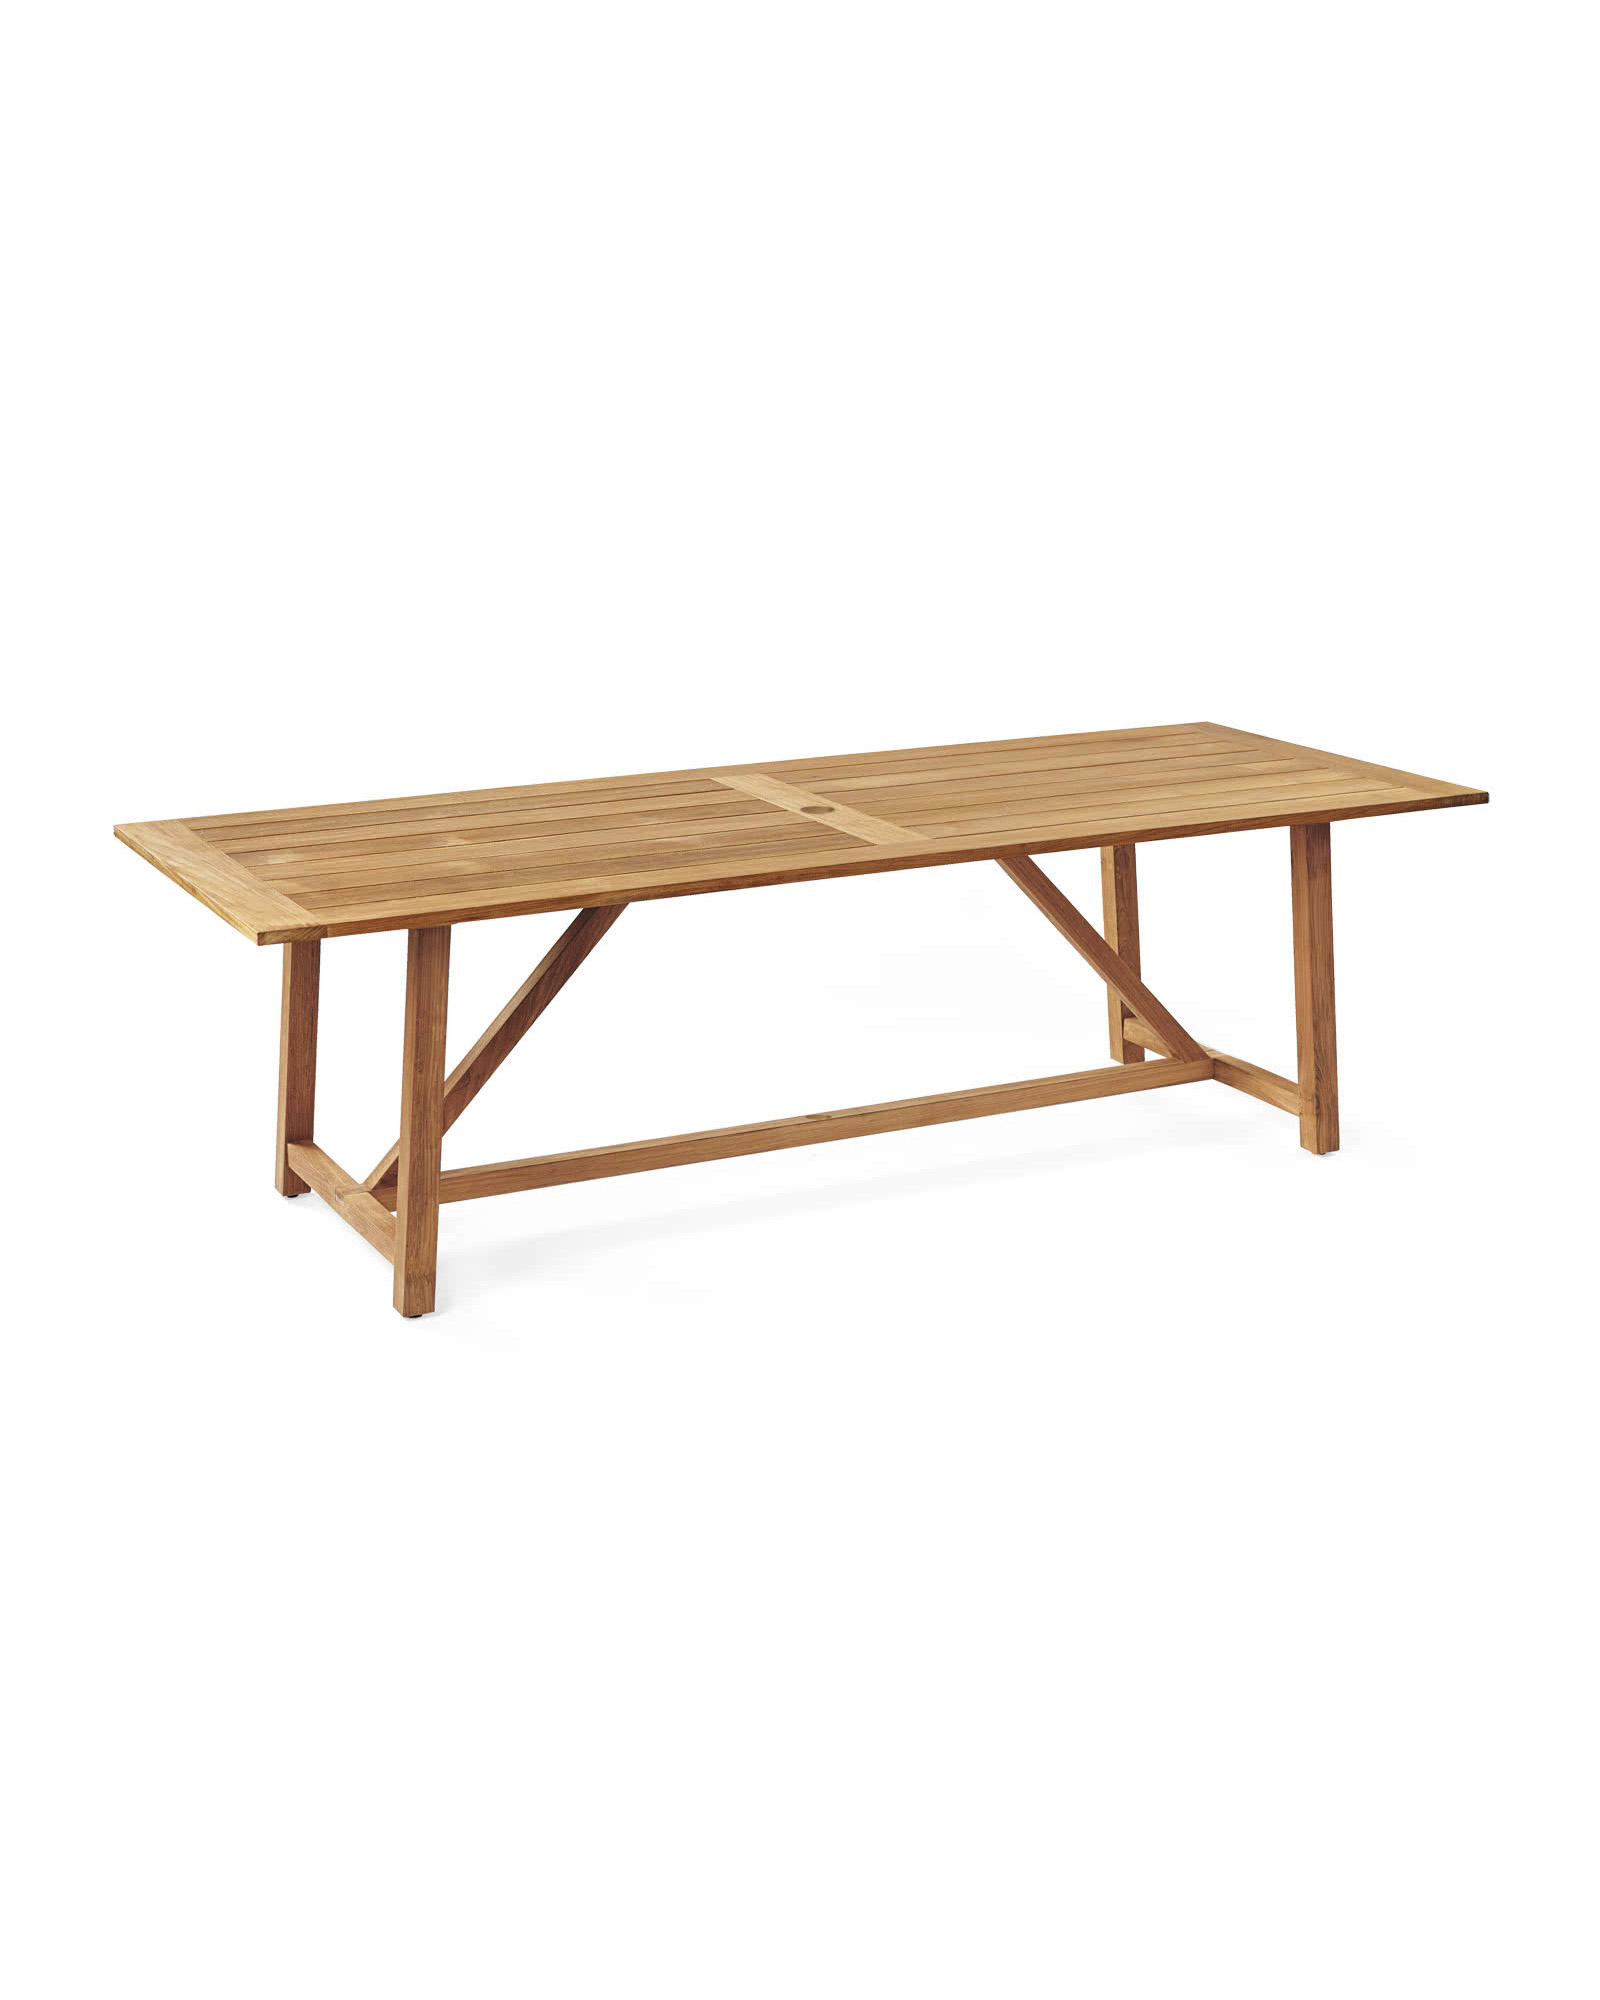 Crosby Teak Dining Table,